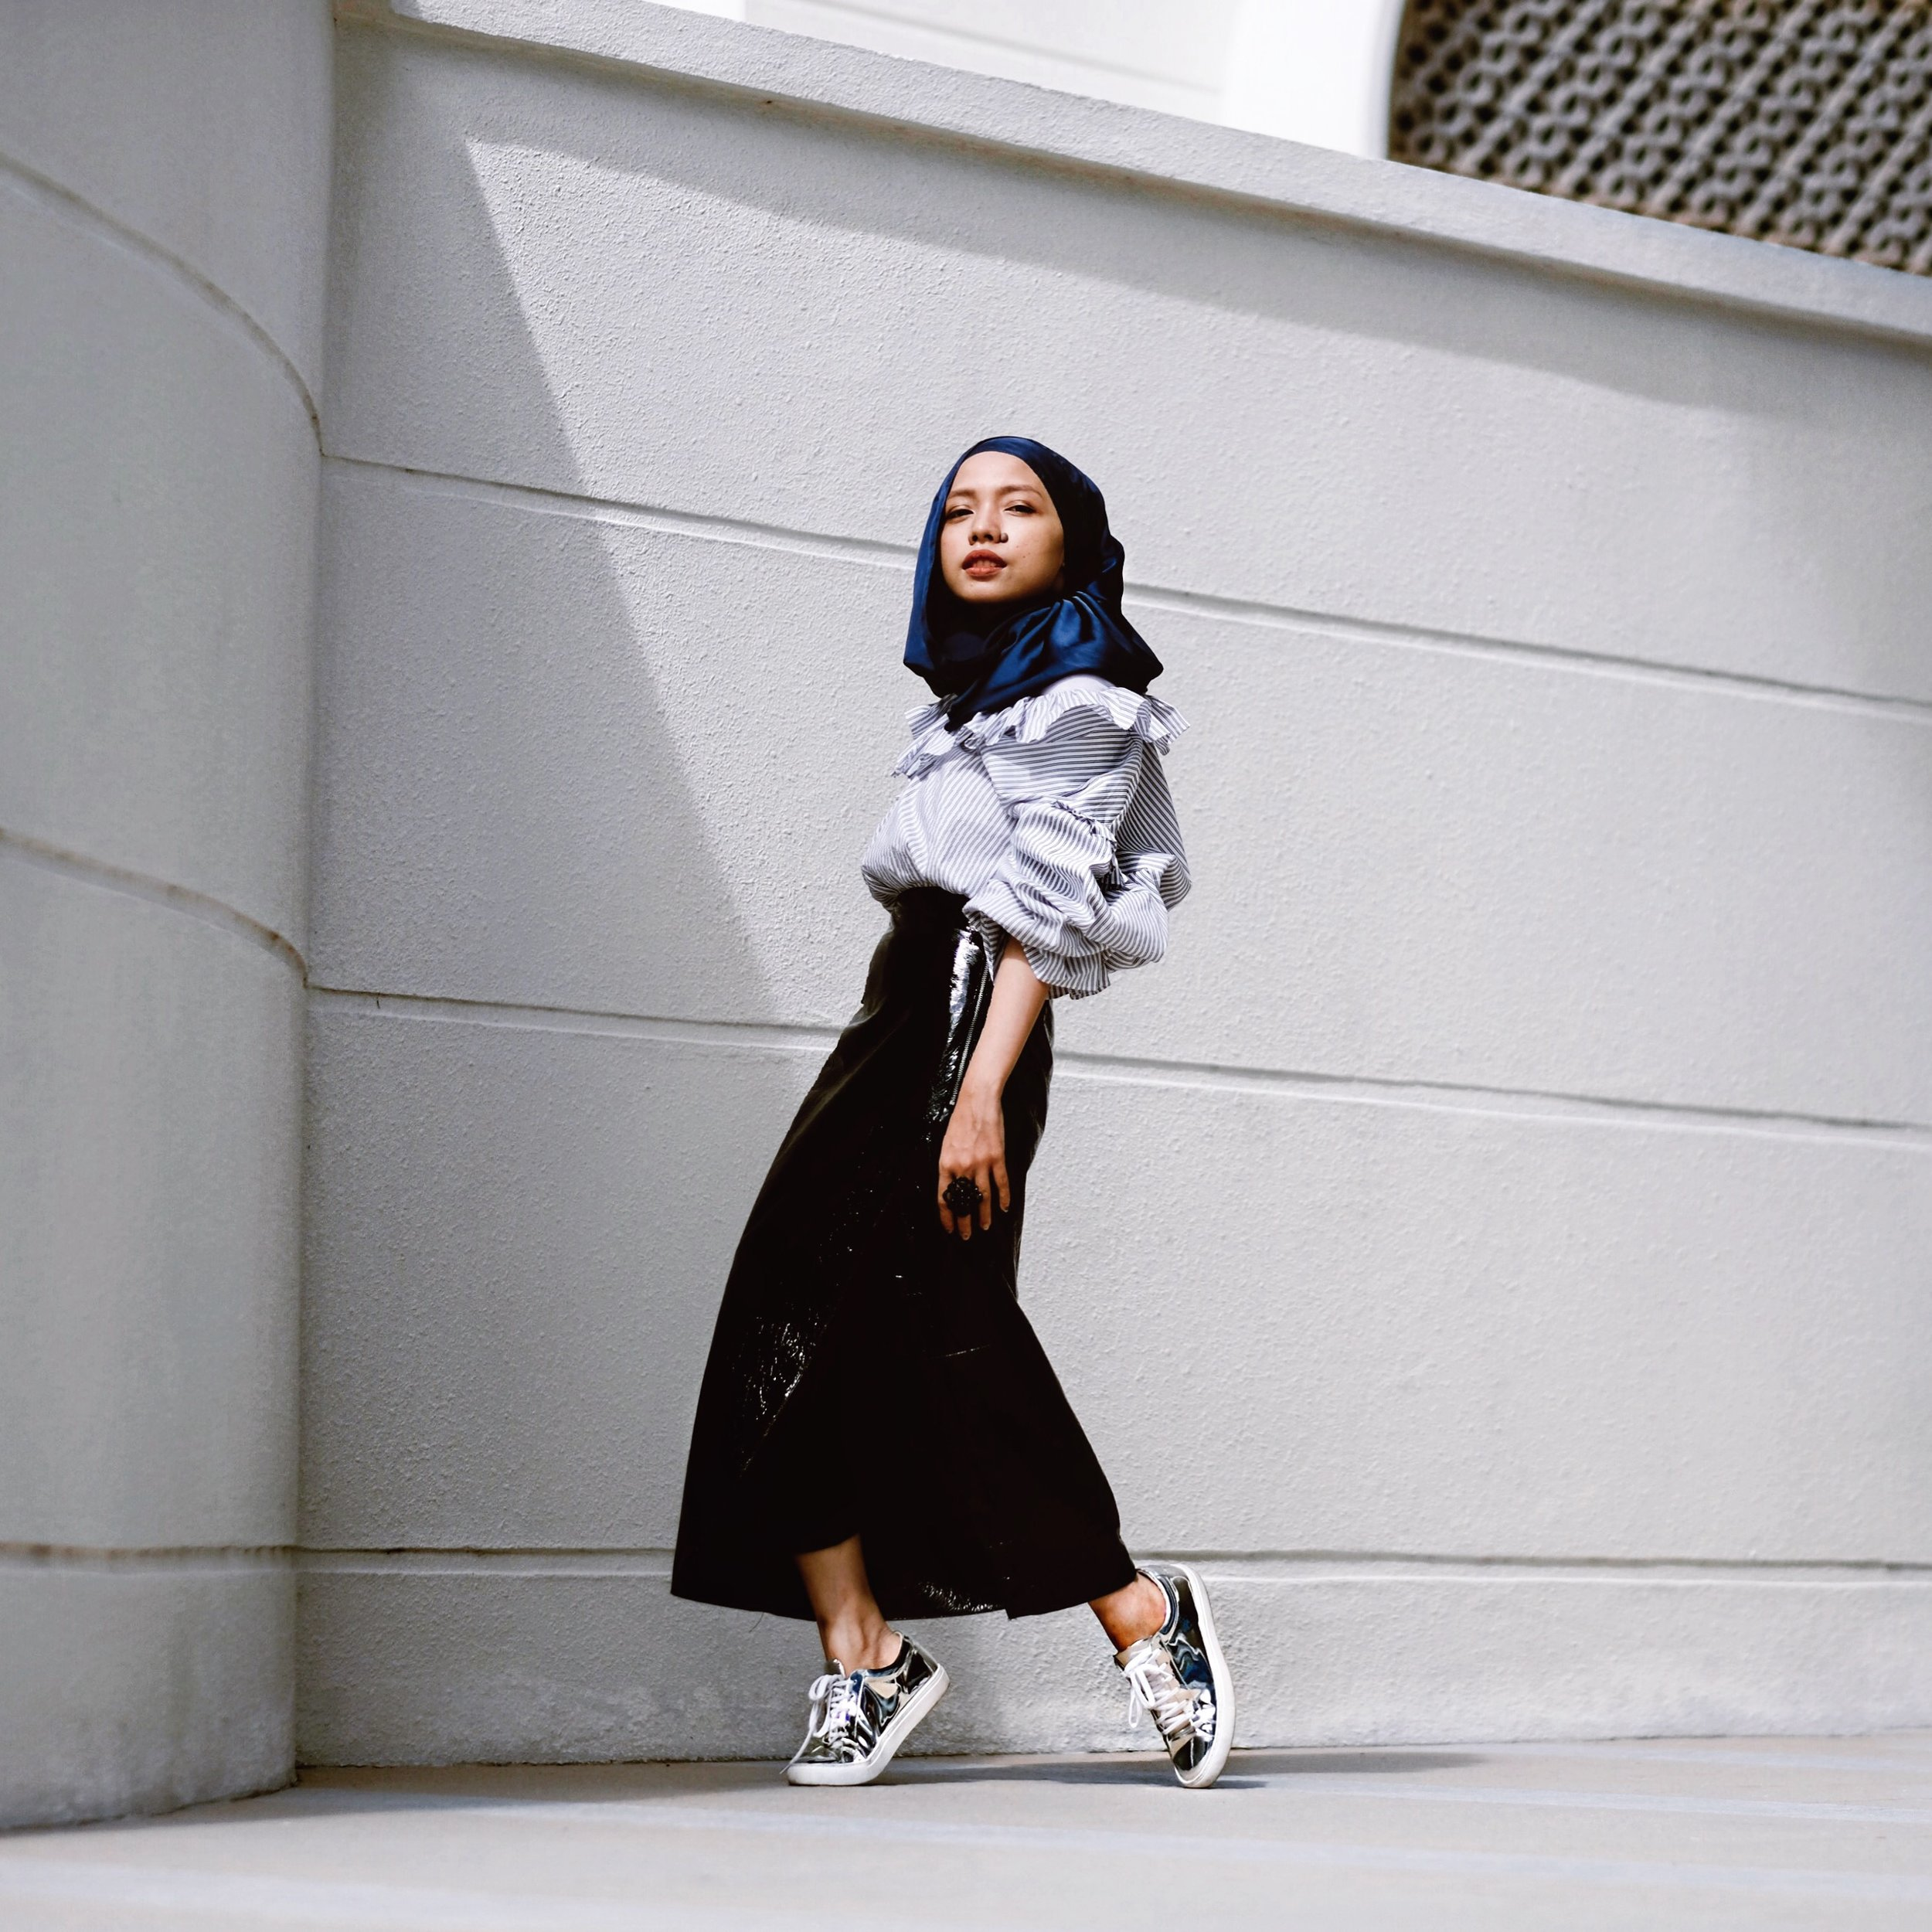 Girls day out - Pair your leather skirt with a fun top (cute pattern, ruffles or slogan tees etc) for an enjoyable day out. Ps: I am in the market for a ruffle leather skirt